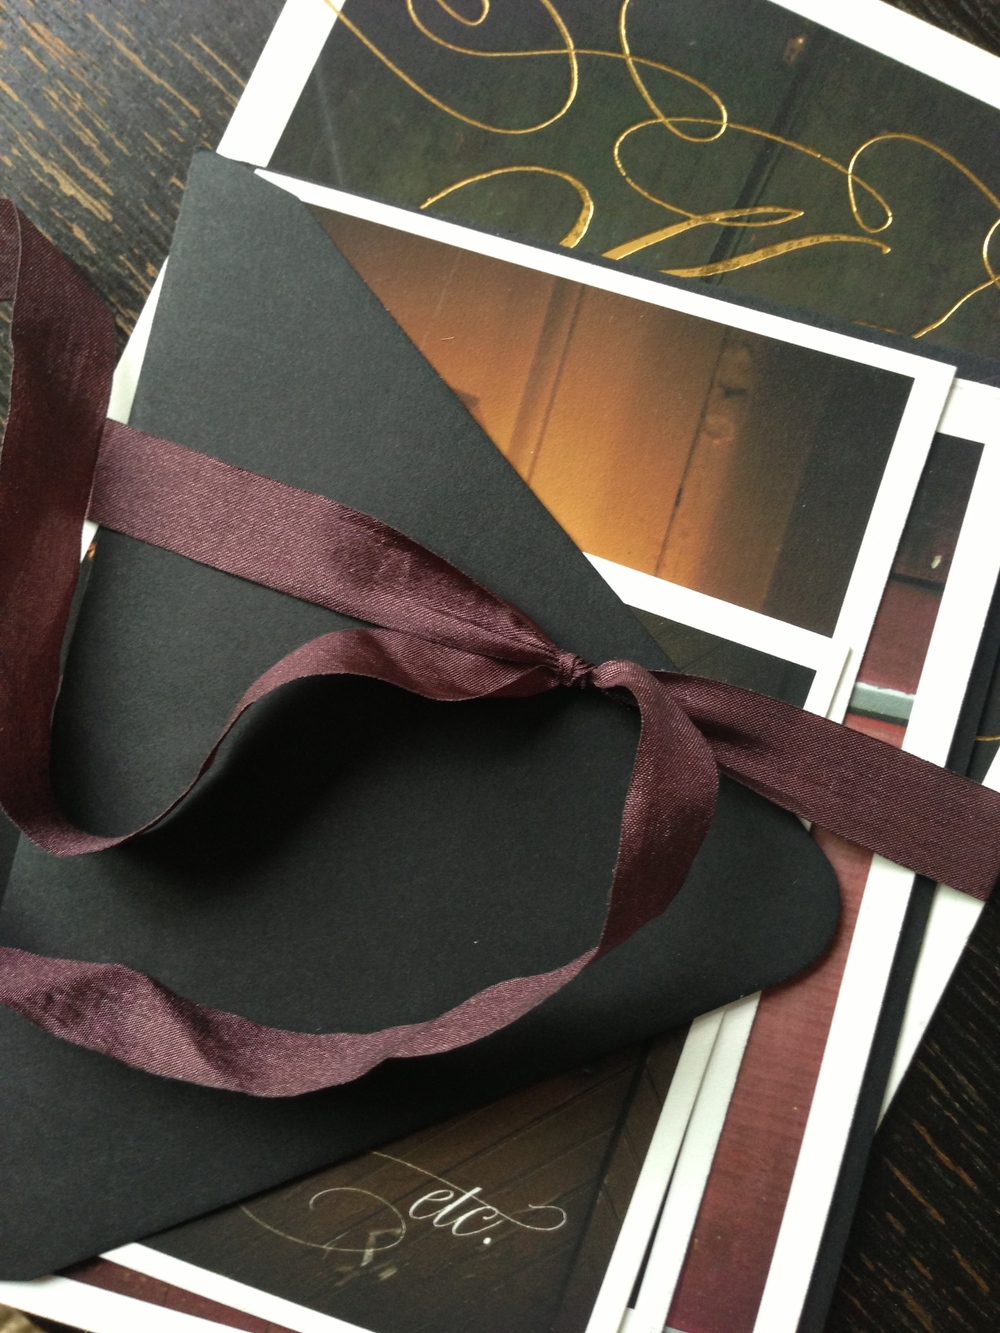 The invitation features cards of different sizes each printed with a photo of a door from the property and bound with a vintage eggplant colored ribbon.